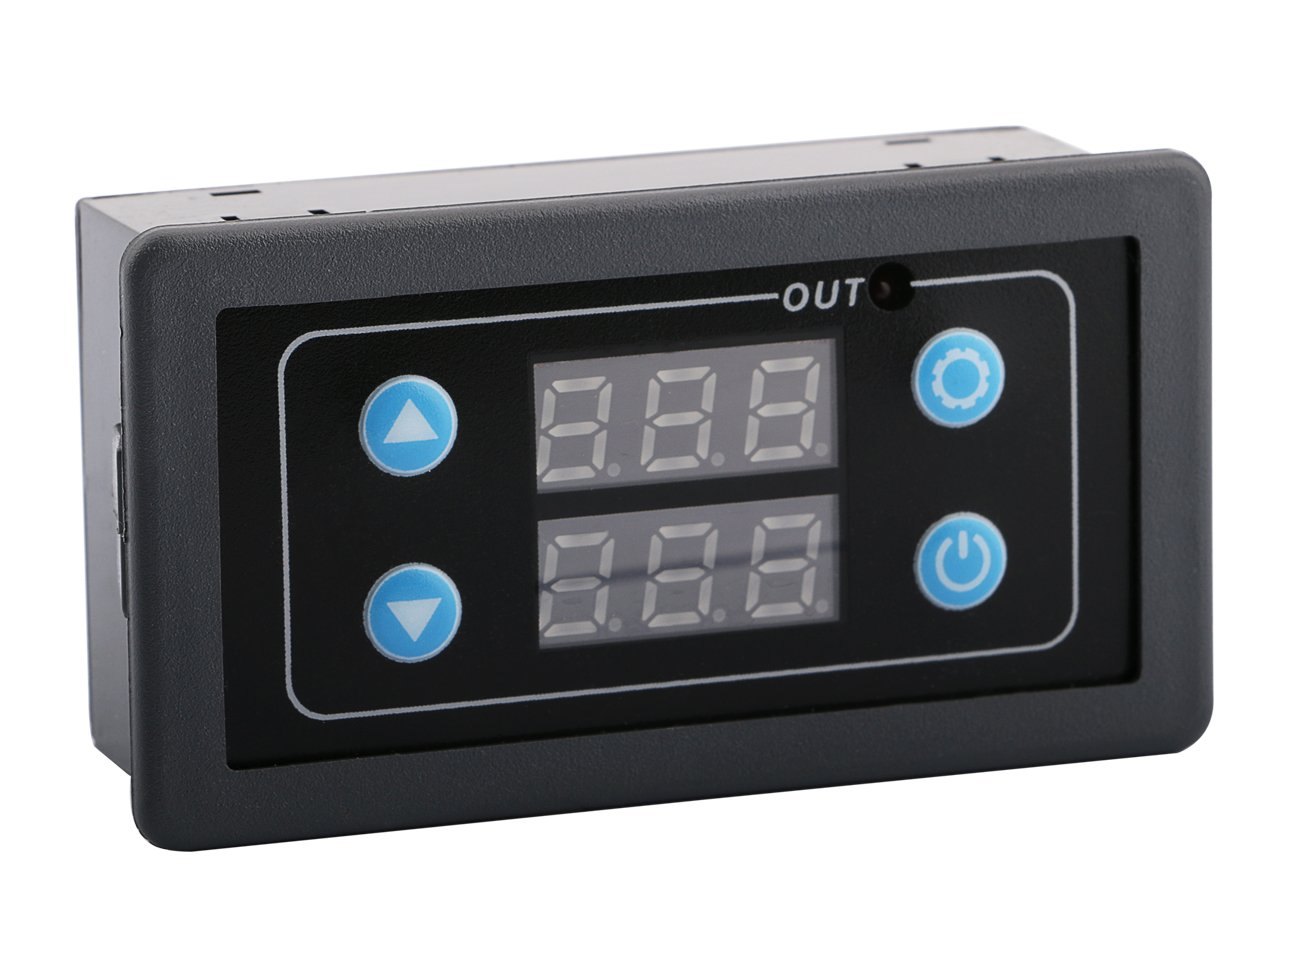 Digital Cycle Delay Timer, Yeeco DC 24V Digital LED Timer Relay Board, 10A 2000W Delay Module with Dual Time Display, Timing Relay Switch, 0-999S/M/H Wide Range Automotive Relay Switch